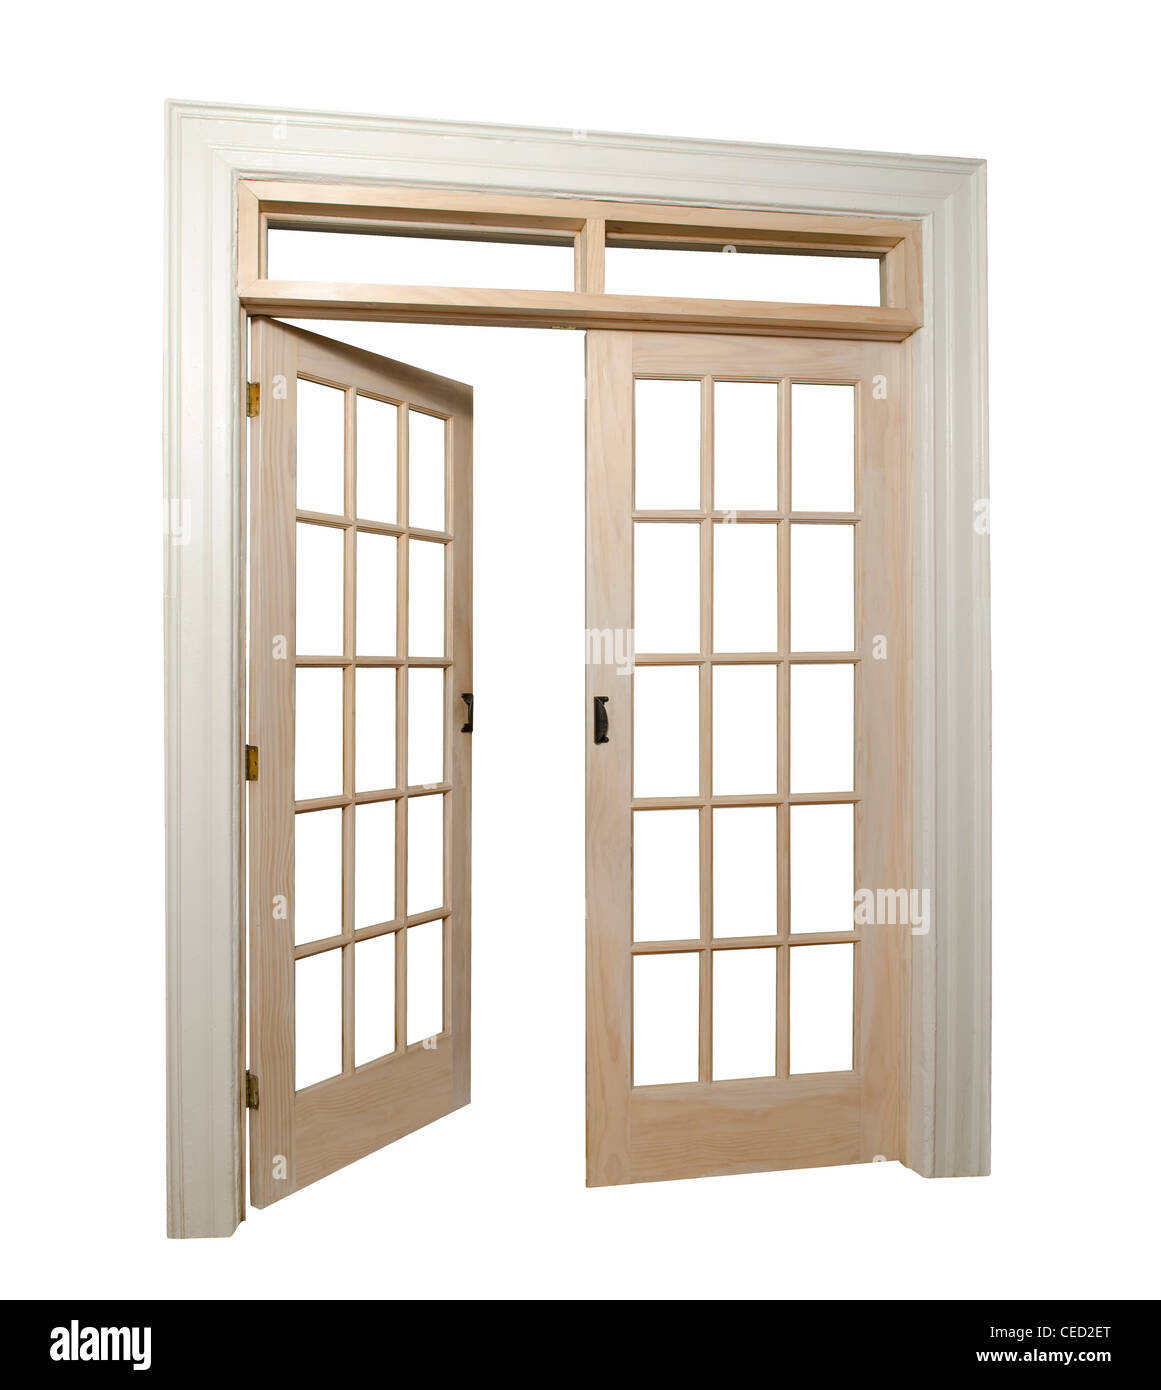 isolated french doors with one door open - Stock Image